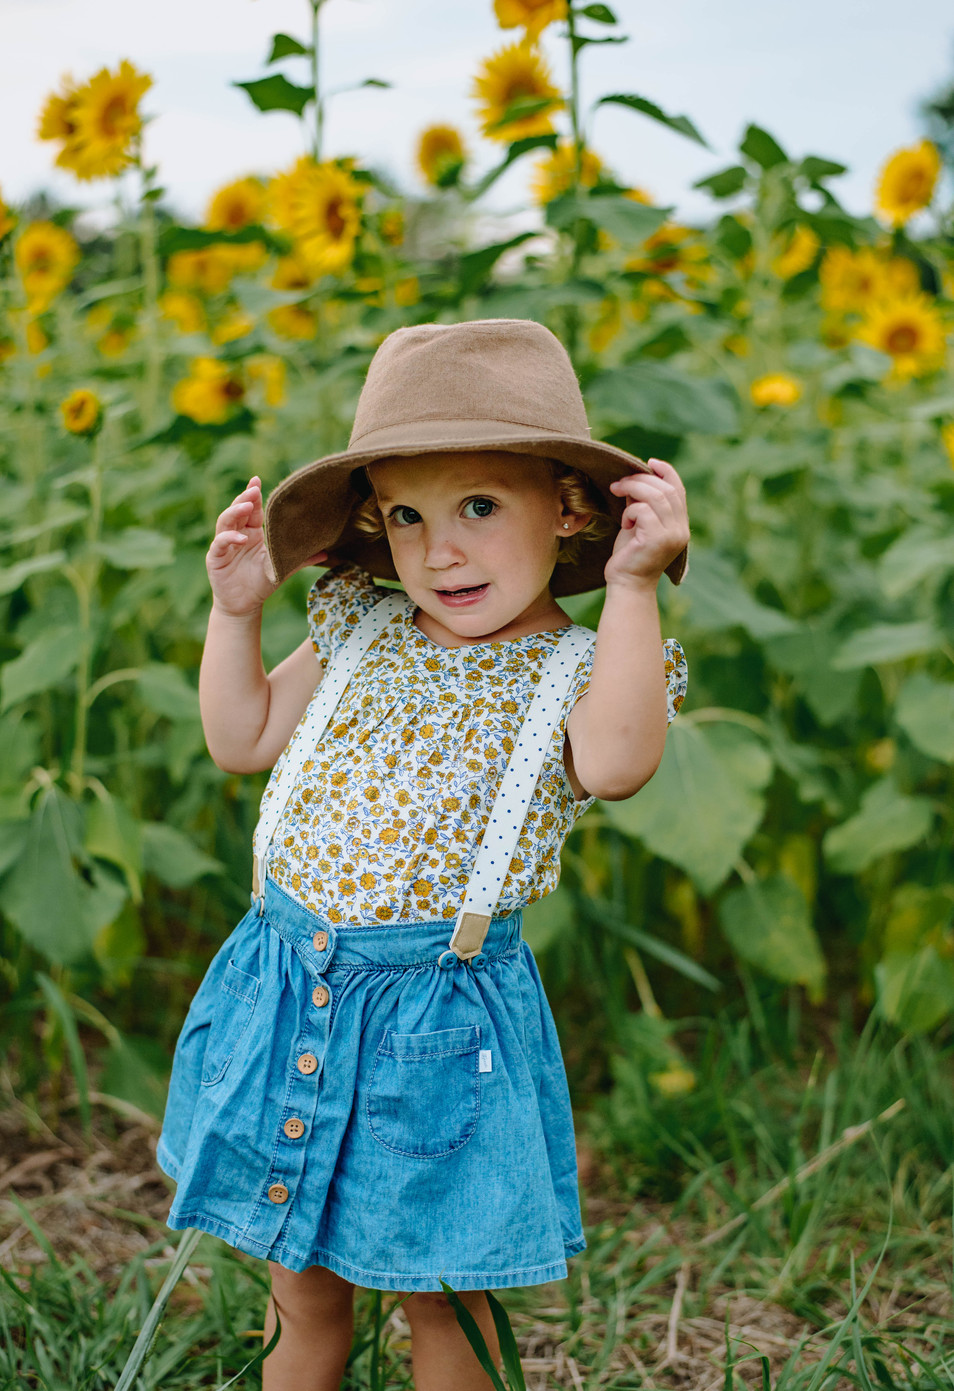 girl with hat and suspenders in sunflowe